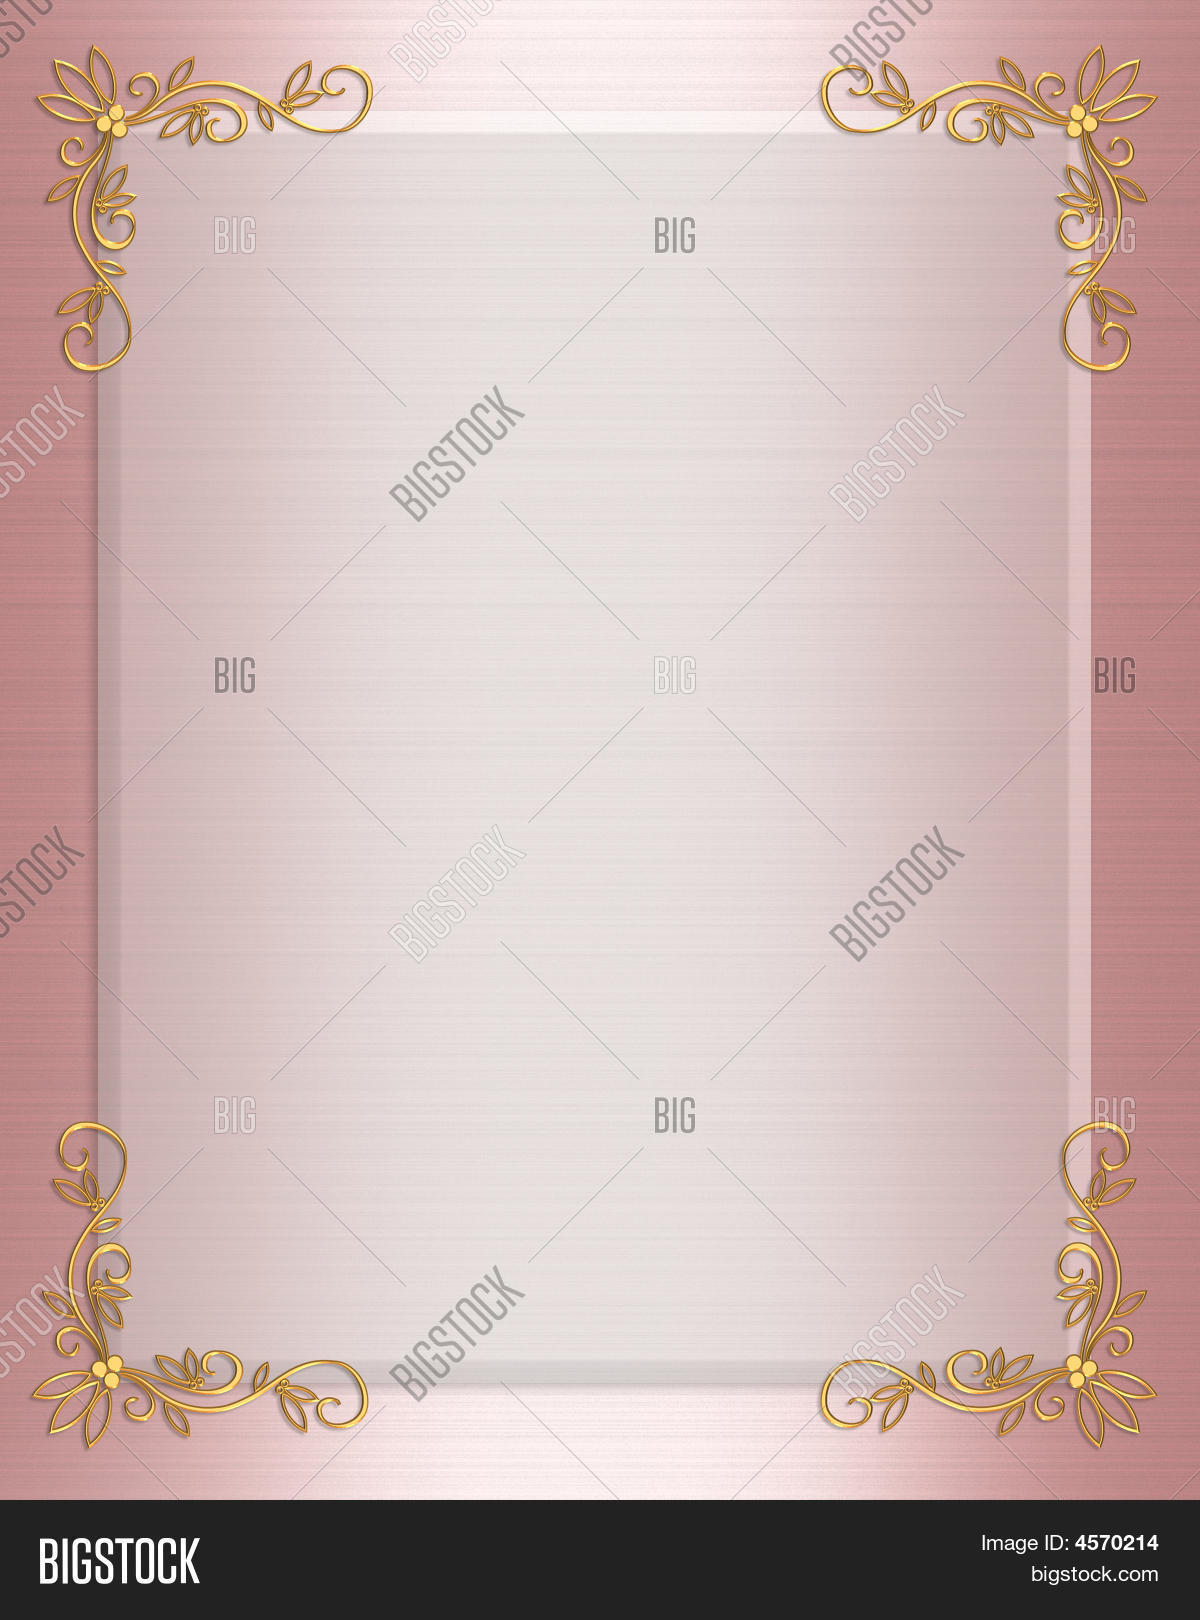 Pink satin formal invitation border image photo bigstock pink satin formal invitation border stopboris Choice Image